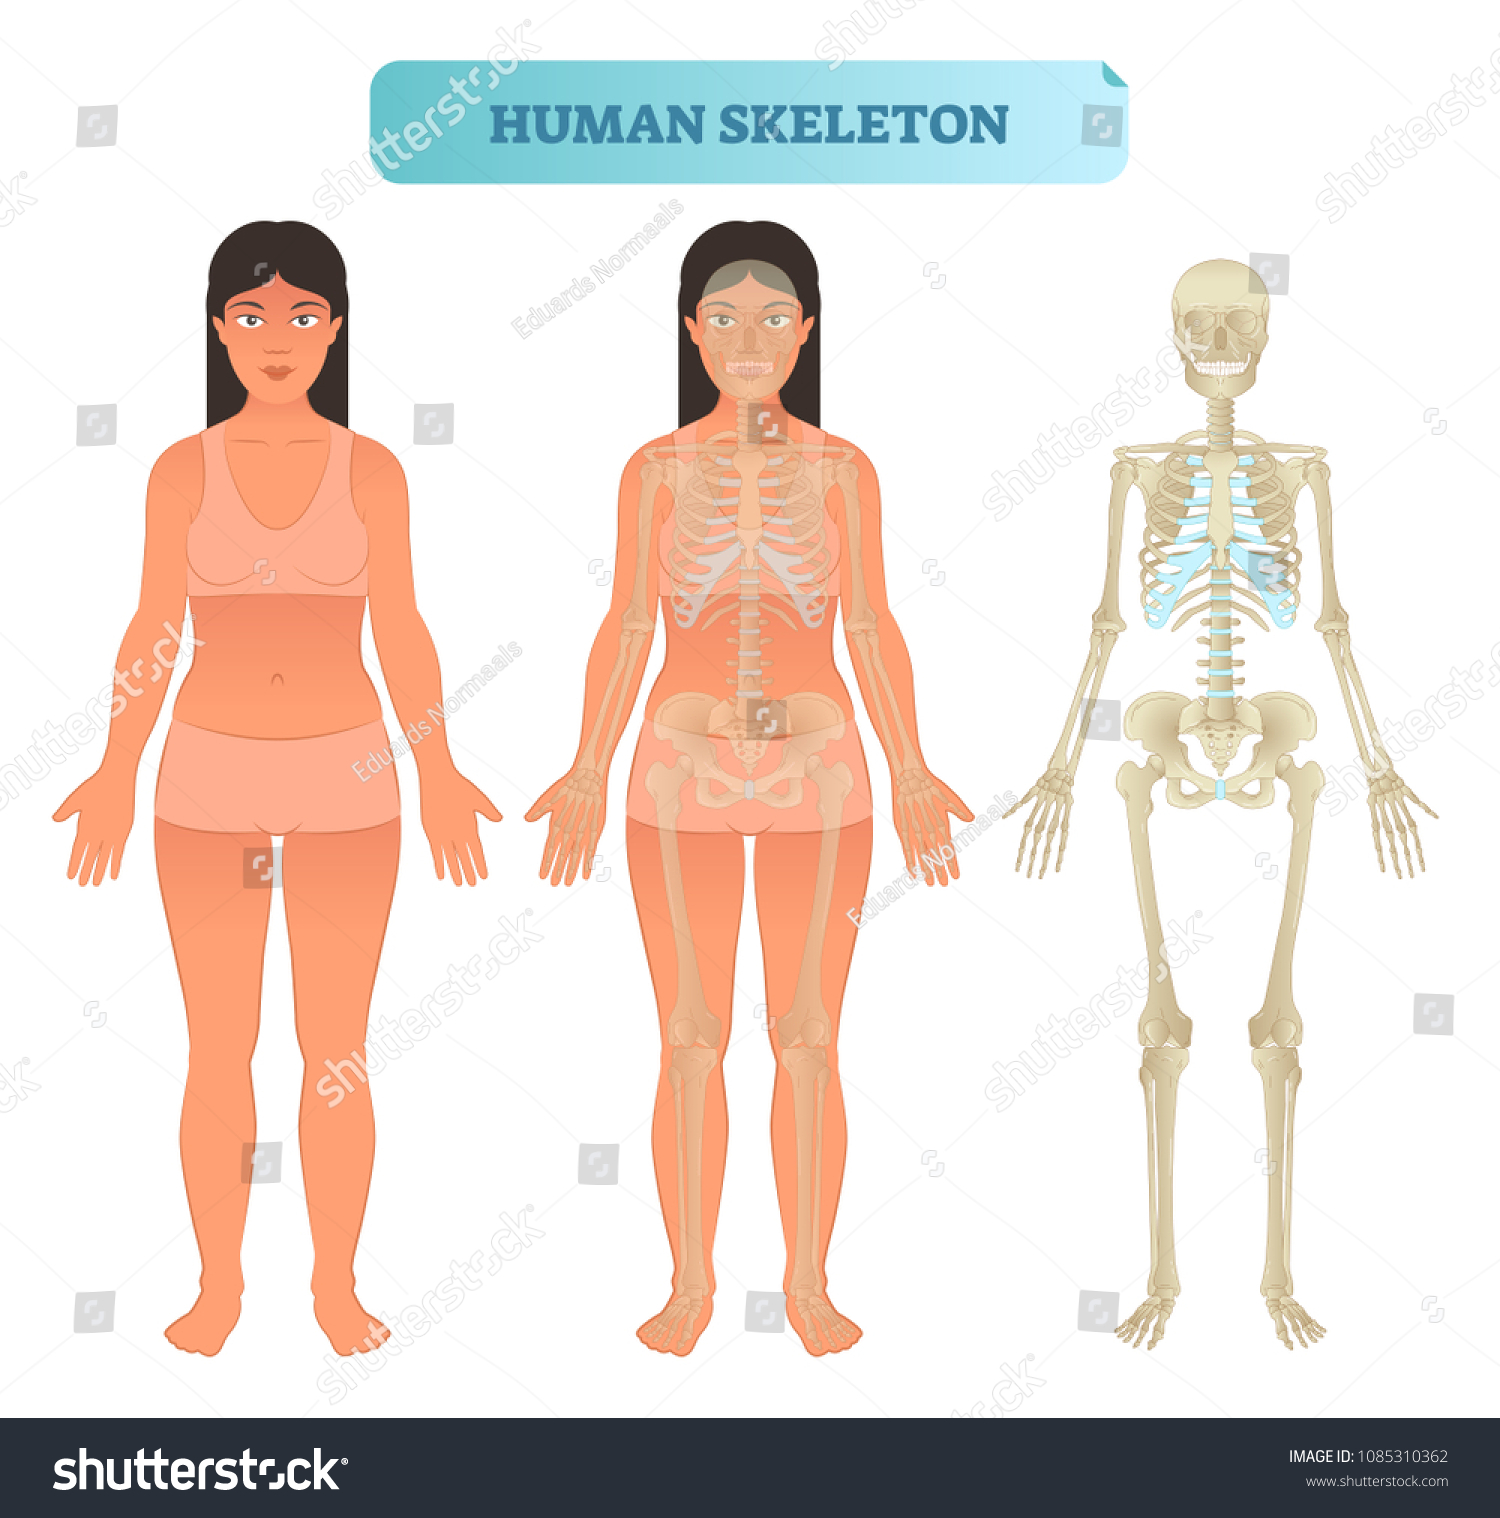 Full Human Skeleton Anatomical Model Medical Stock Vector Royalty